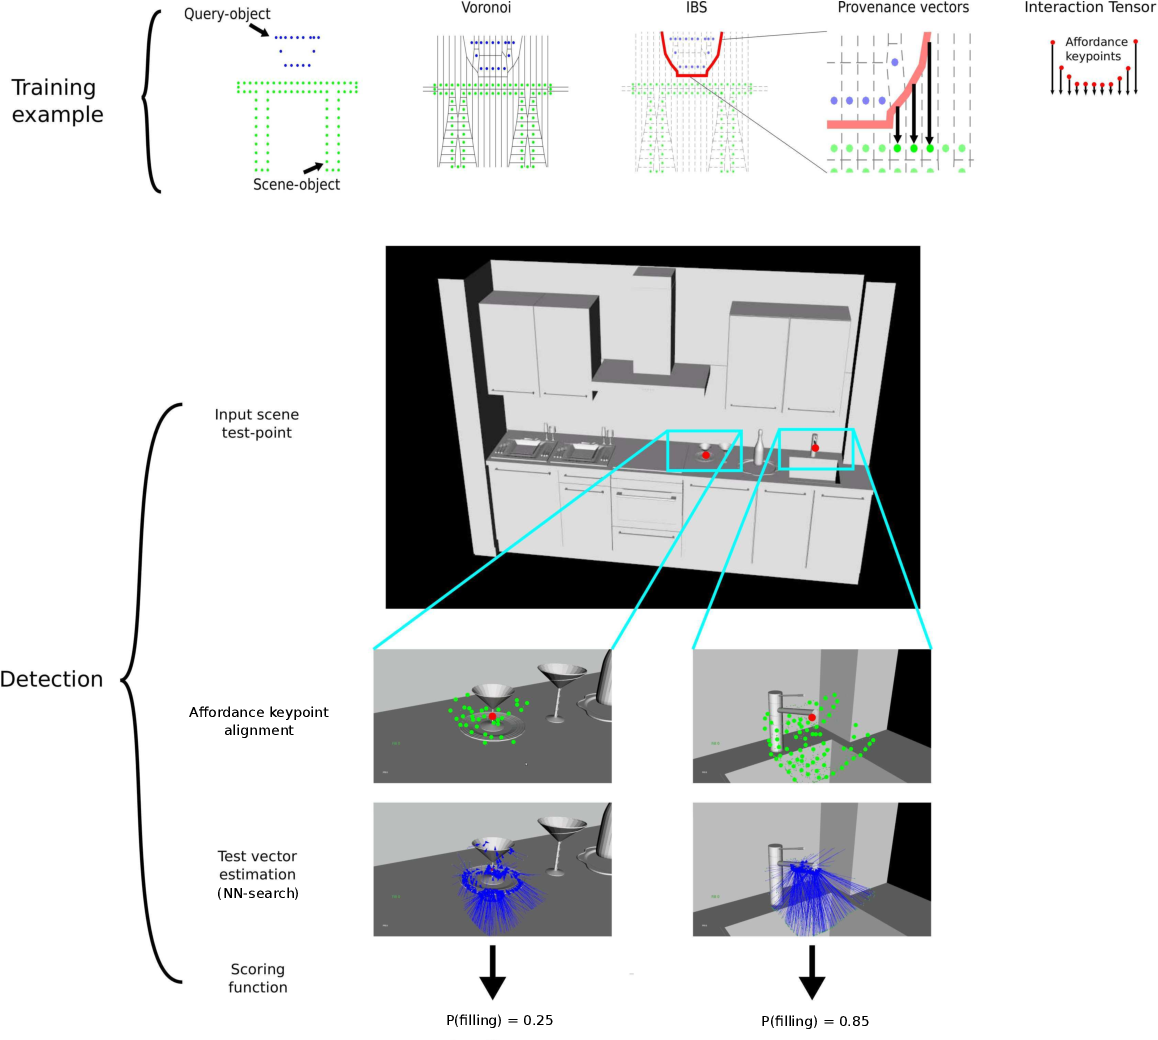 Figure 2 for Egocentric affordance detection with the one-shot geometry-driven Interaction Tensor